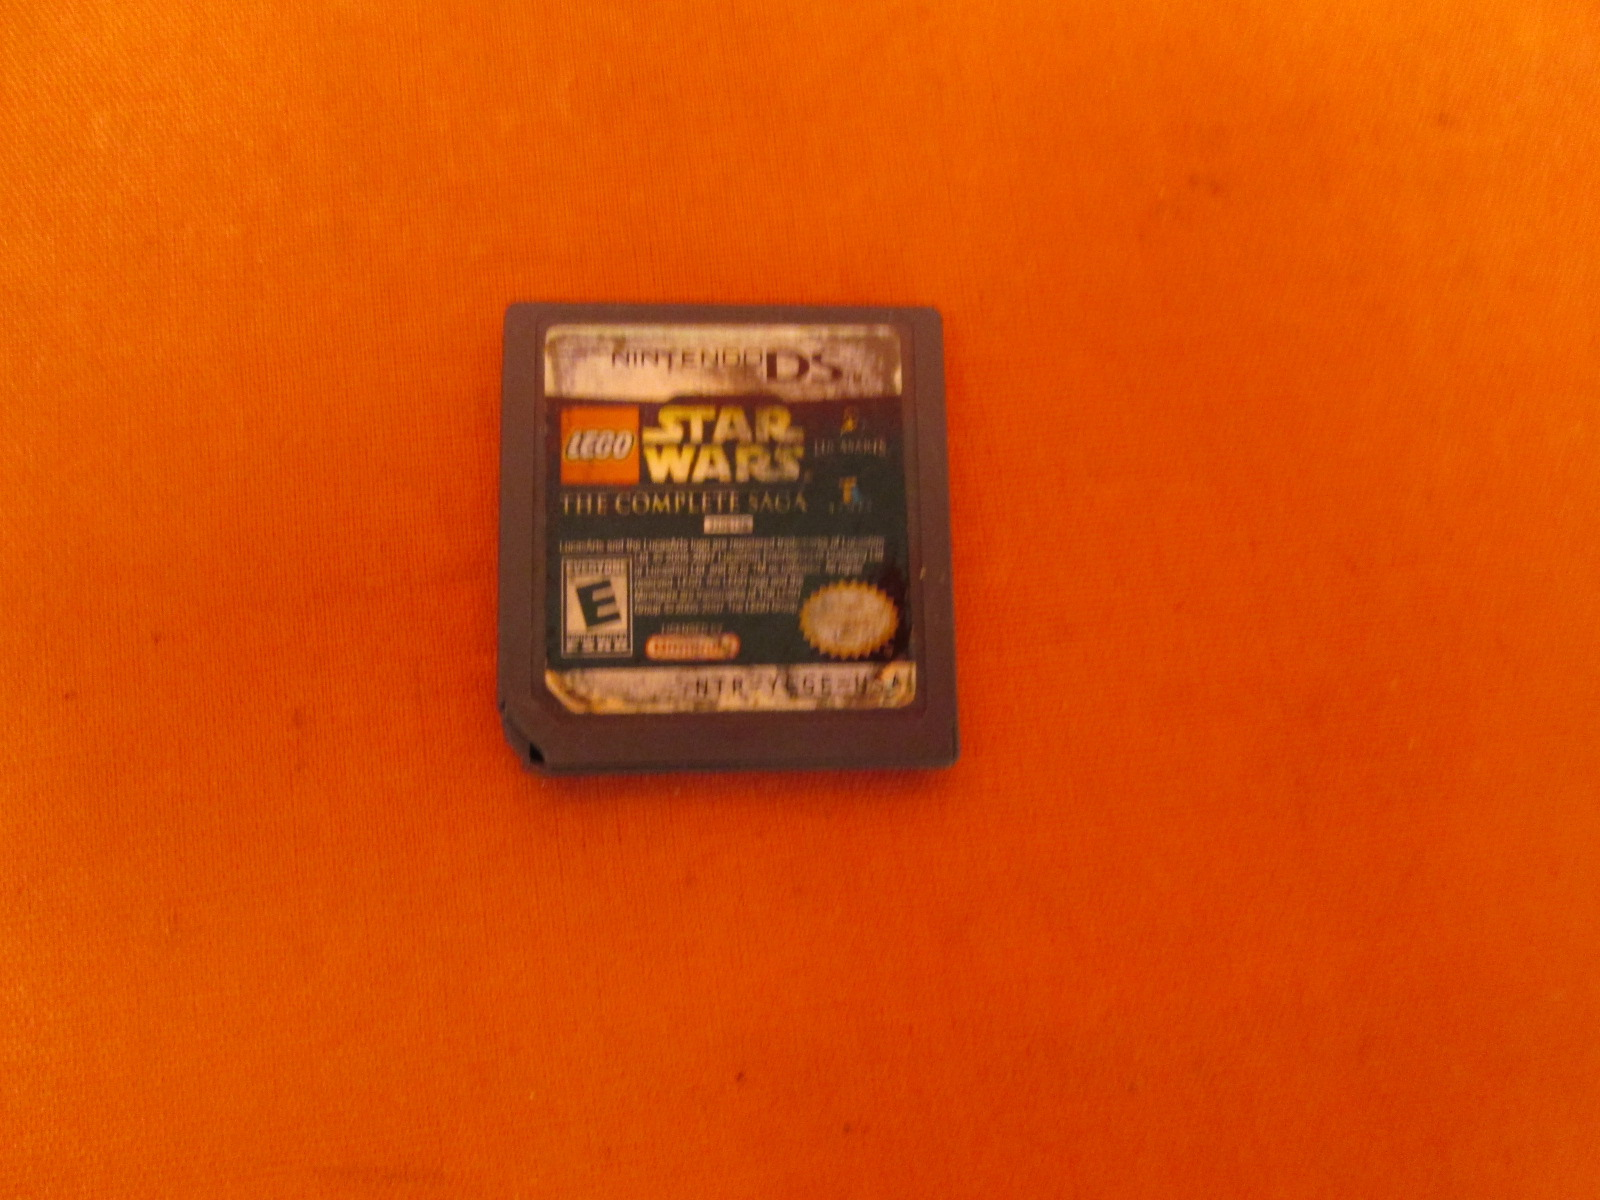 Lego Star Wars The Complete Saga For Nintendo DS DSi 3DS 2DS